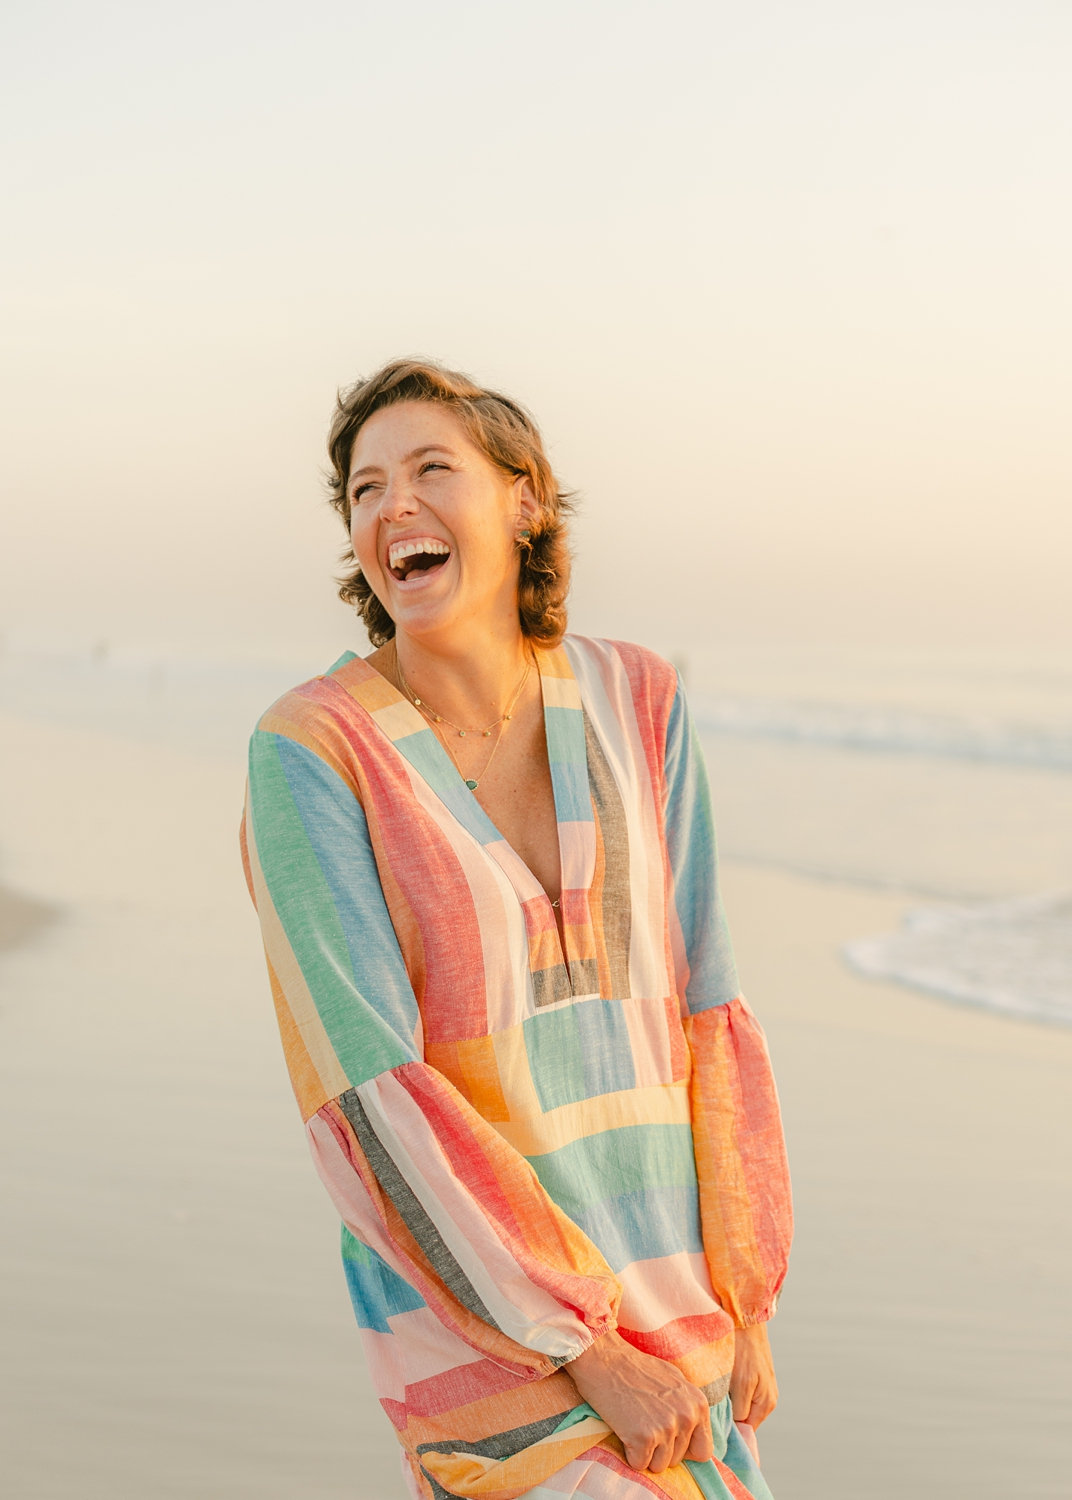 cancer survivor laughing and wearing a long rainbow dress, Ryaphotos